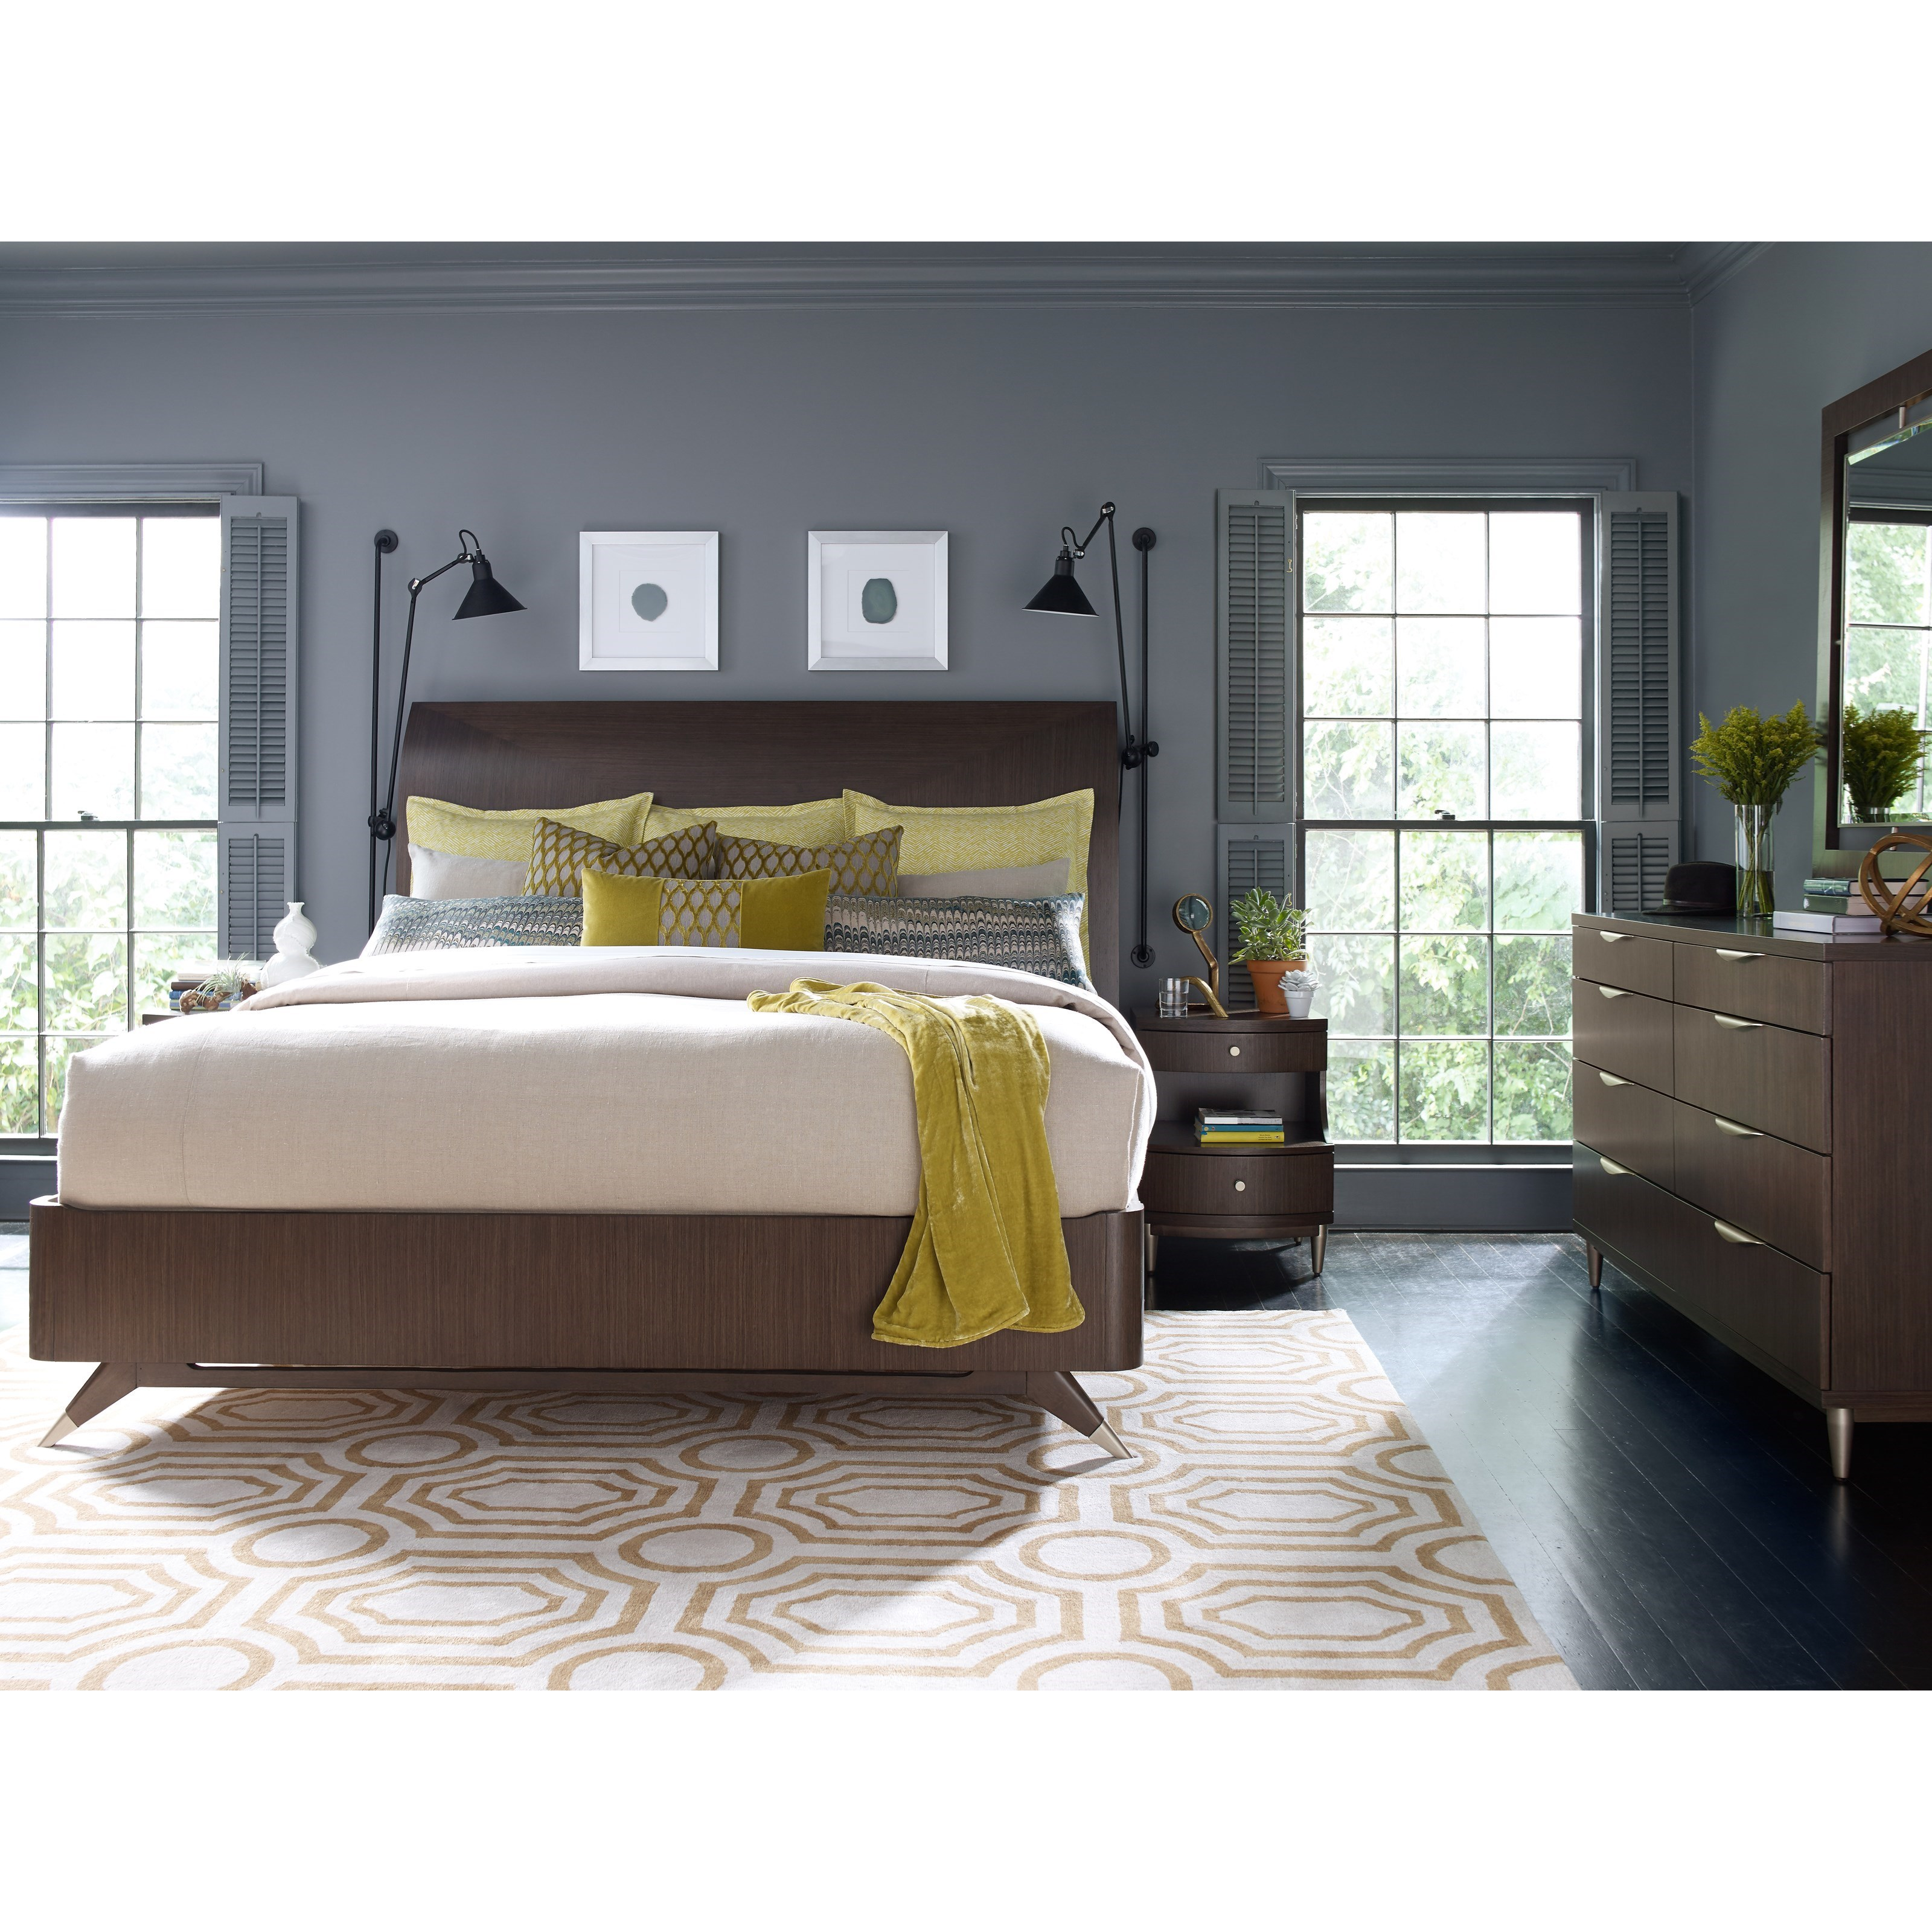 Rachael Ray Home by Legacy Classic Soho California King Bedroom Group - Item Number: 6020 CK Bedroom Group 4